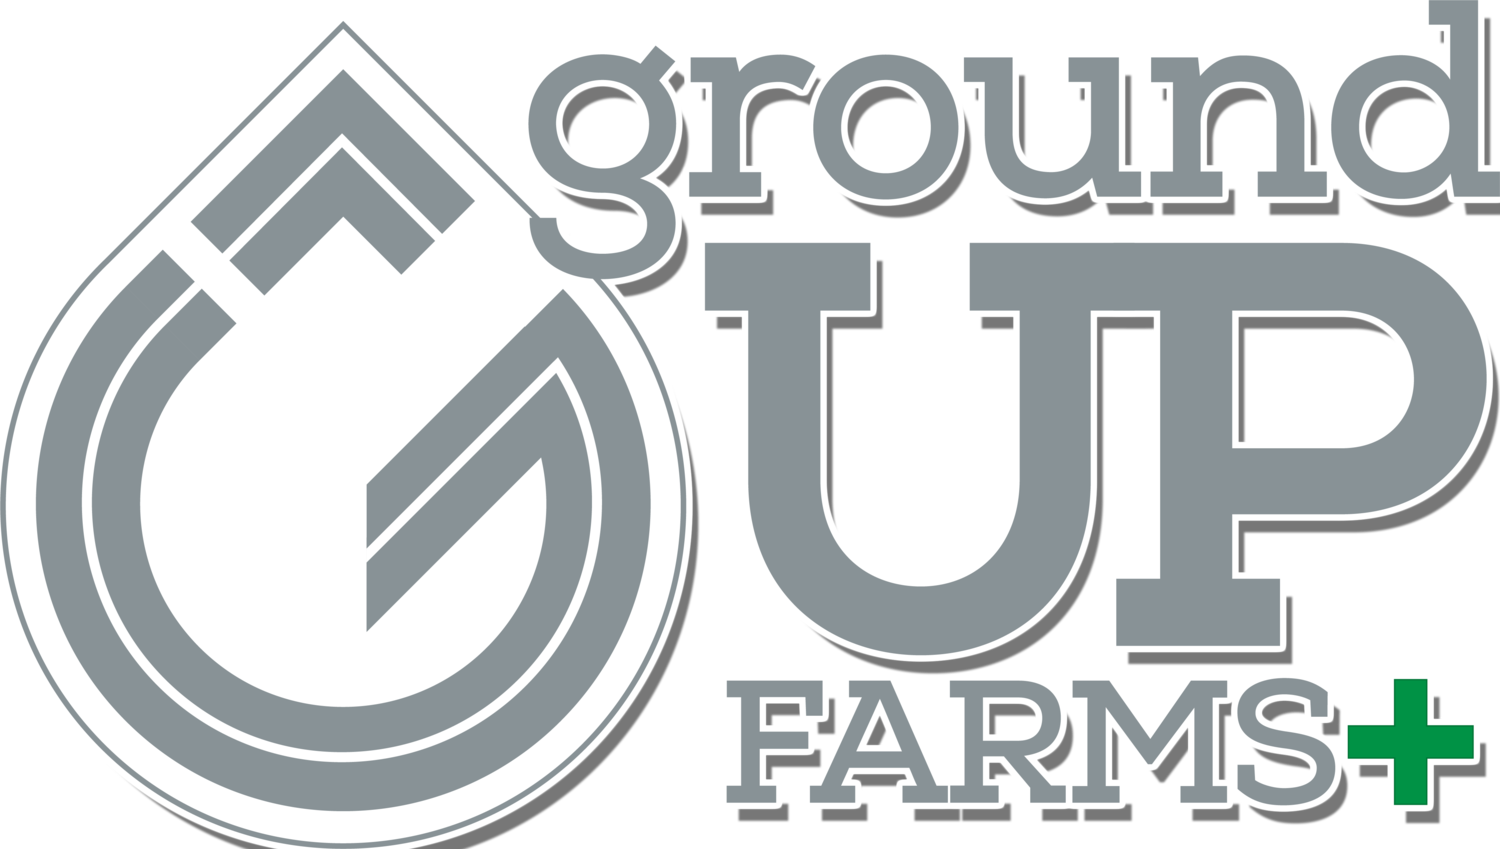 Ground Up Farms